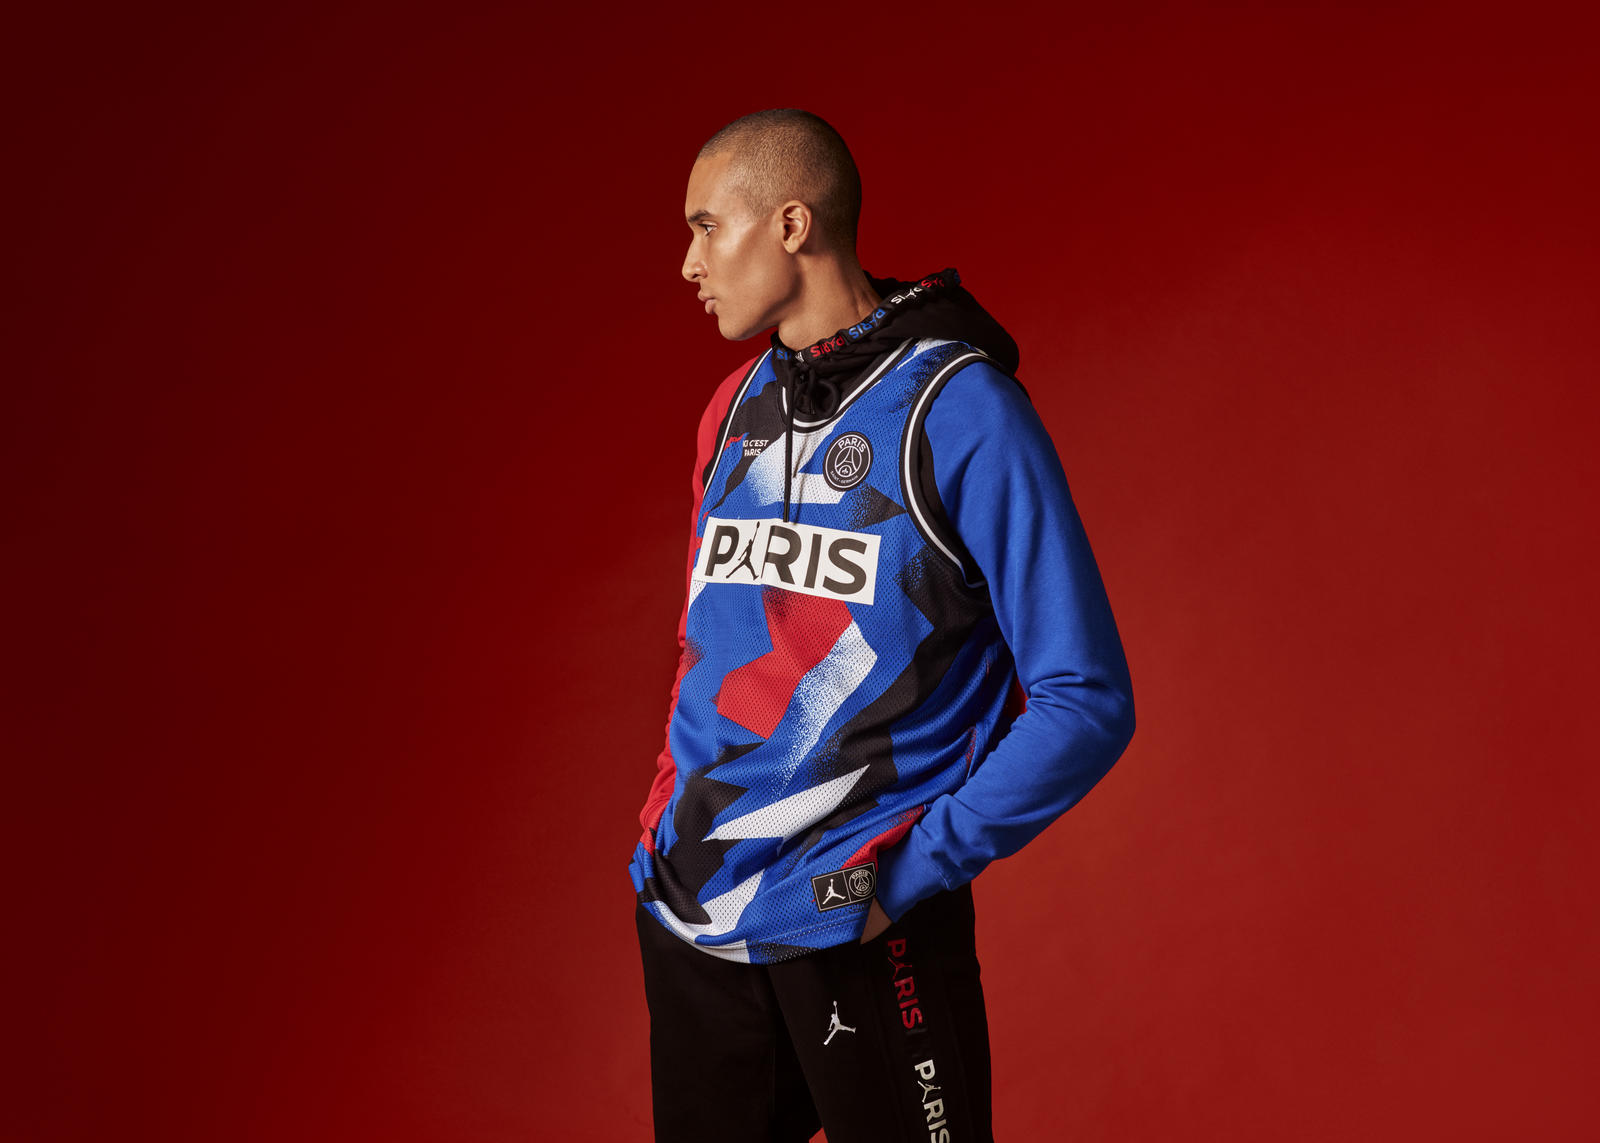 SHORT NIKE JORDAN DIAMOND BASKET PSG PARIS 201920 – Peter Paris